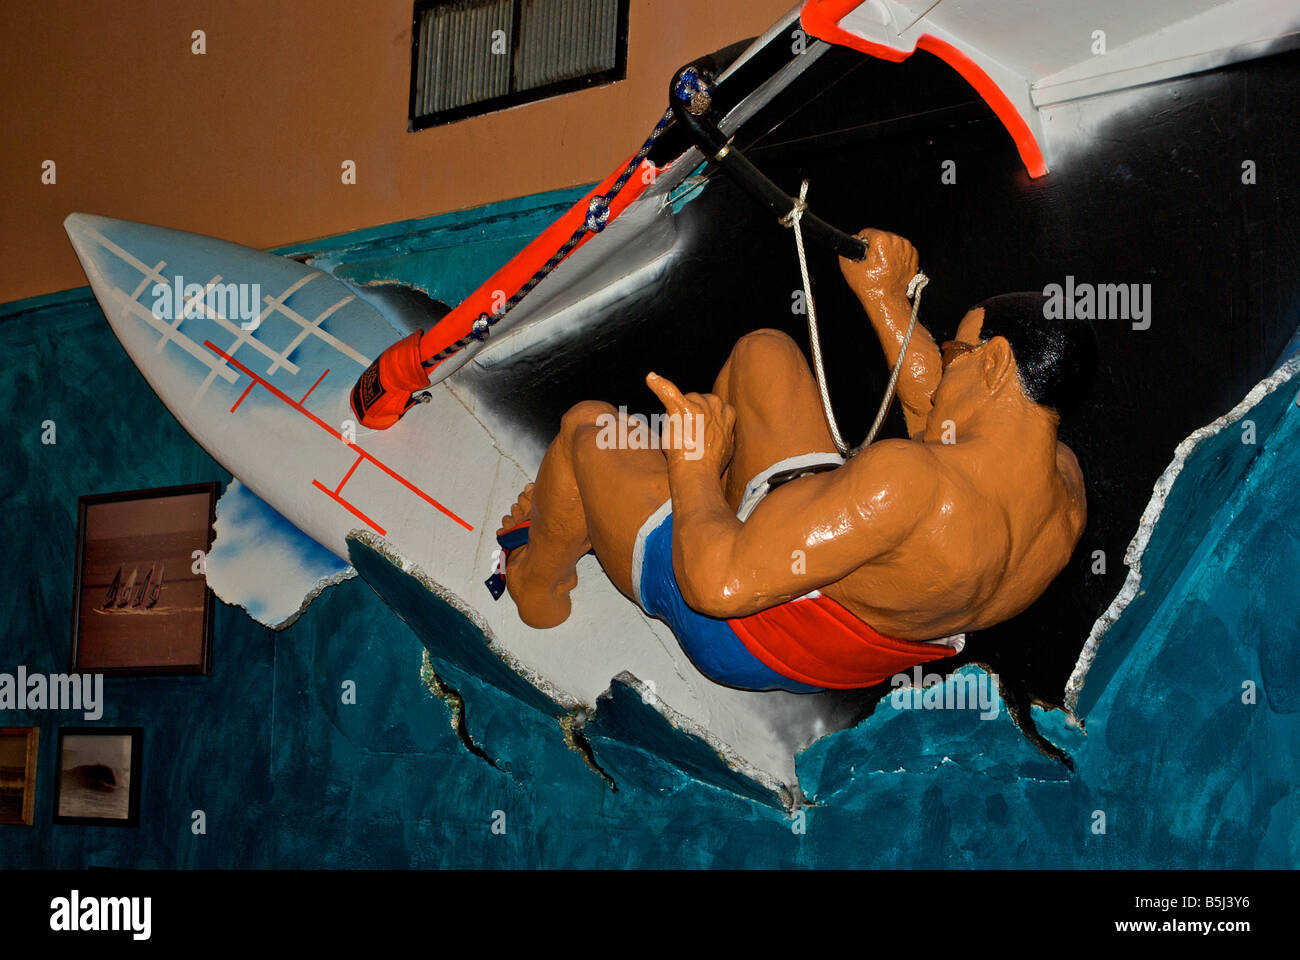 Three dimensional mixed media windsurfer on surfboard wave jumping sculpture art in bar - Stock Image